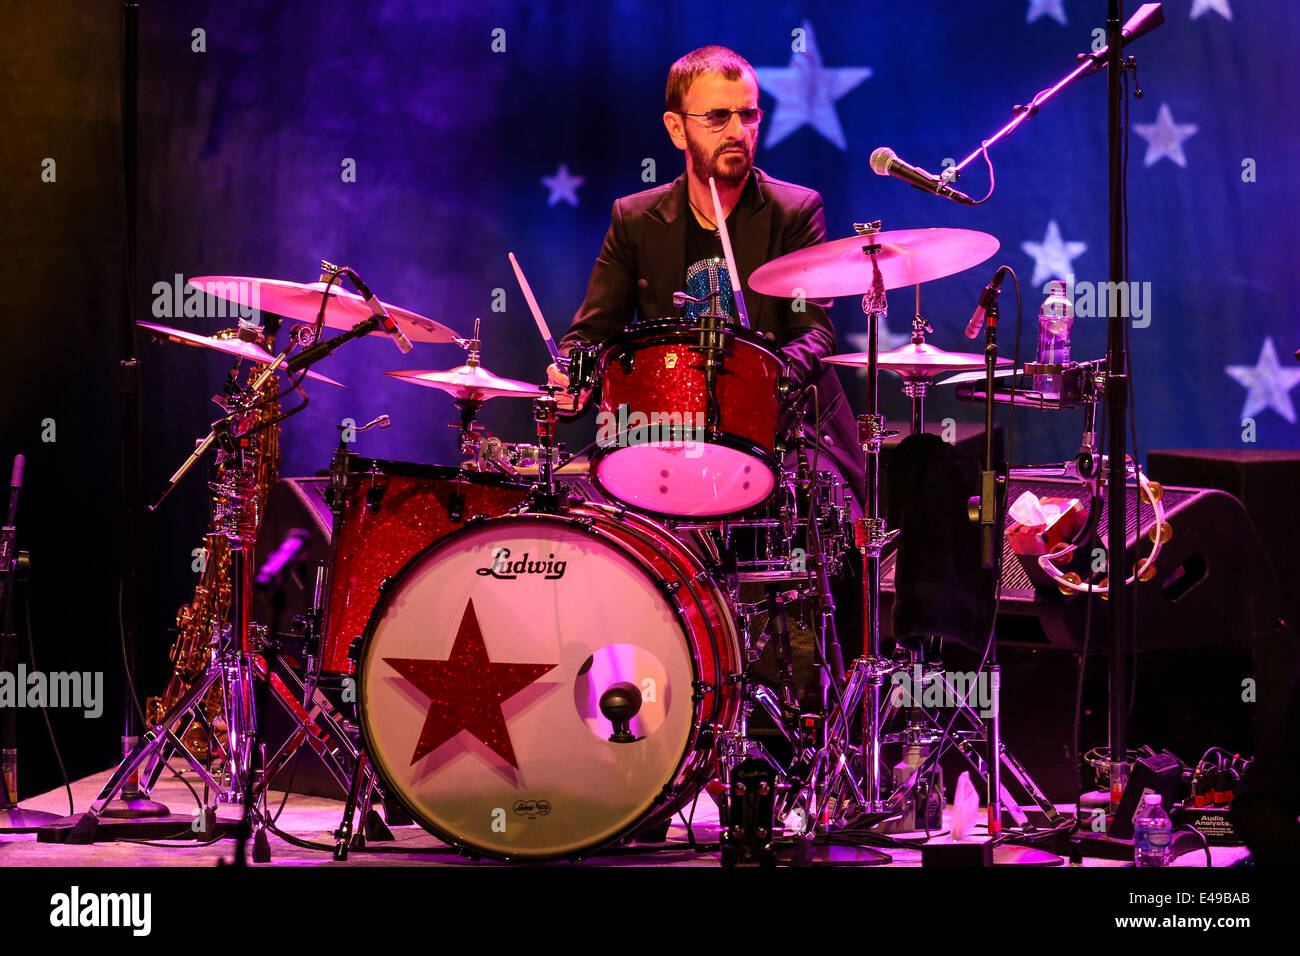 Ringo Starr and his All Star Band perform live in concert - Stock Image